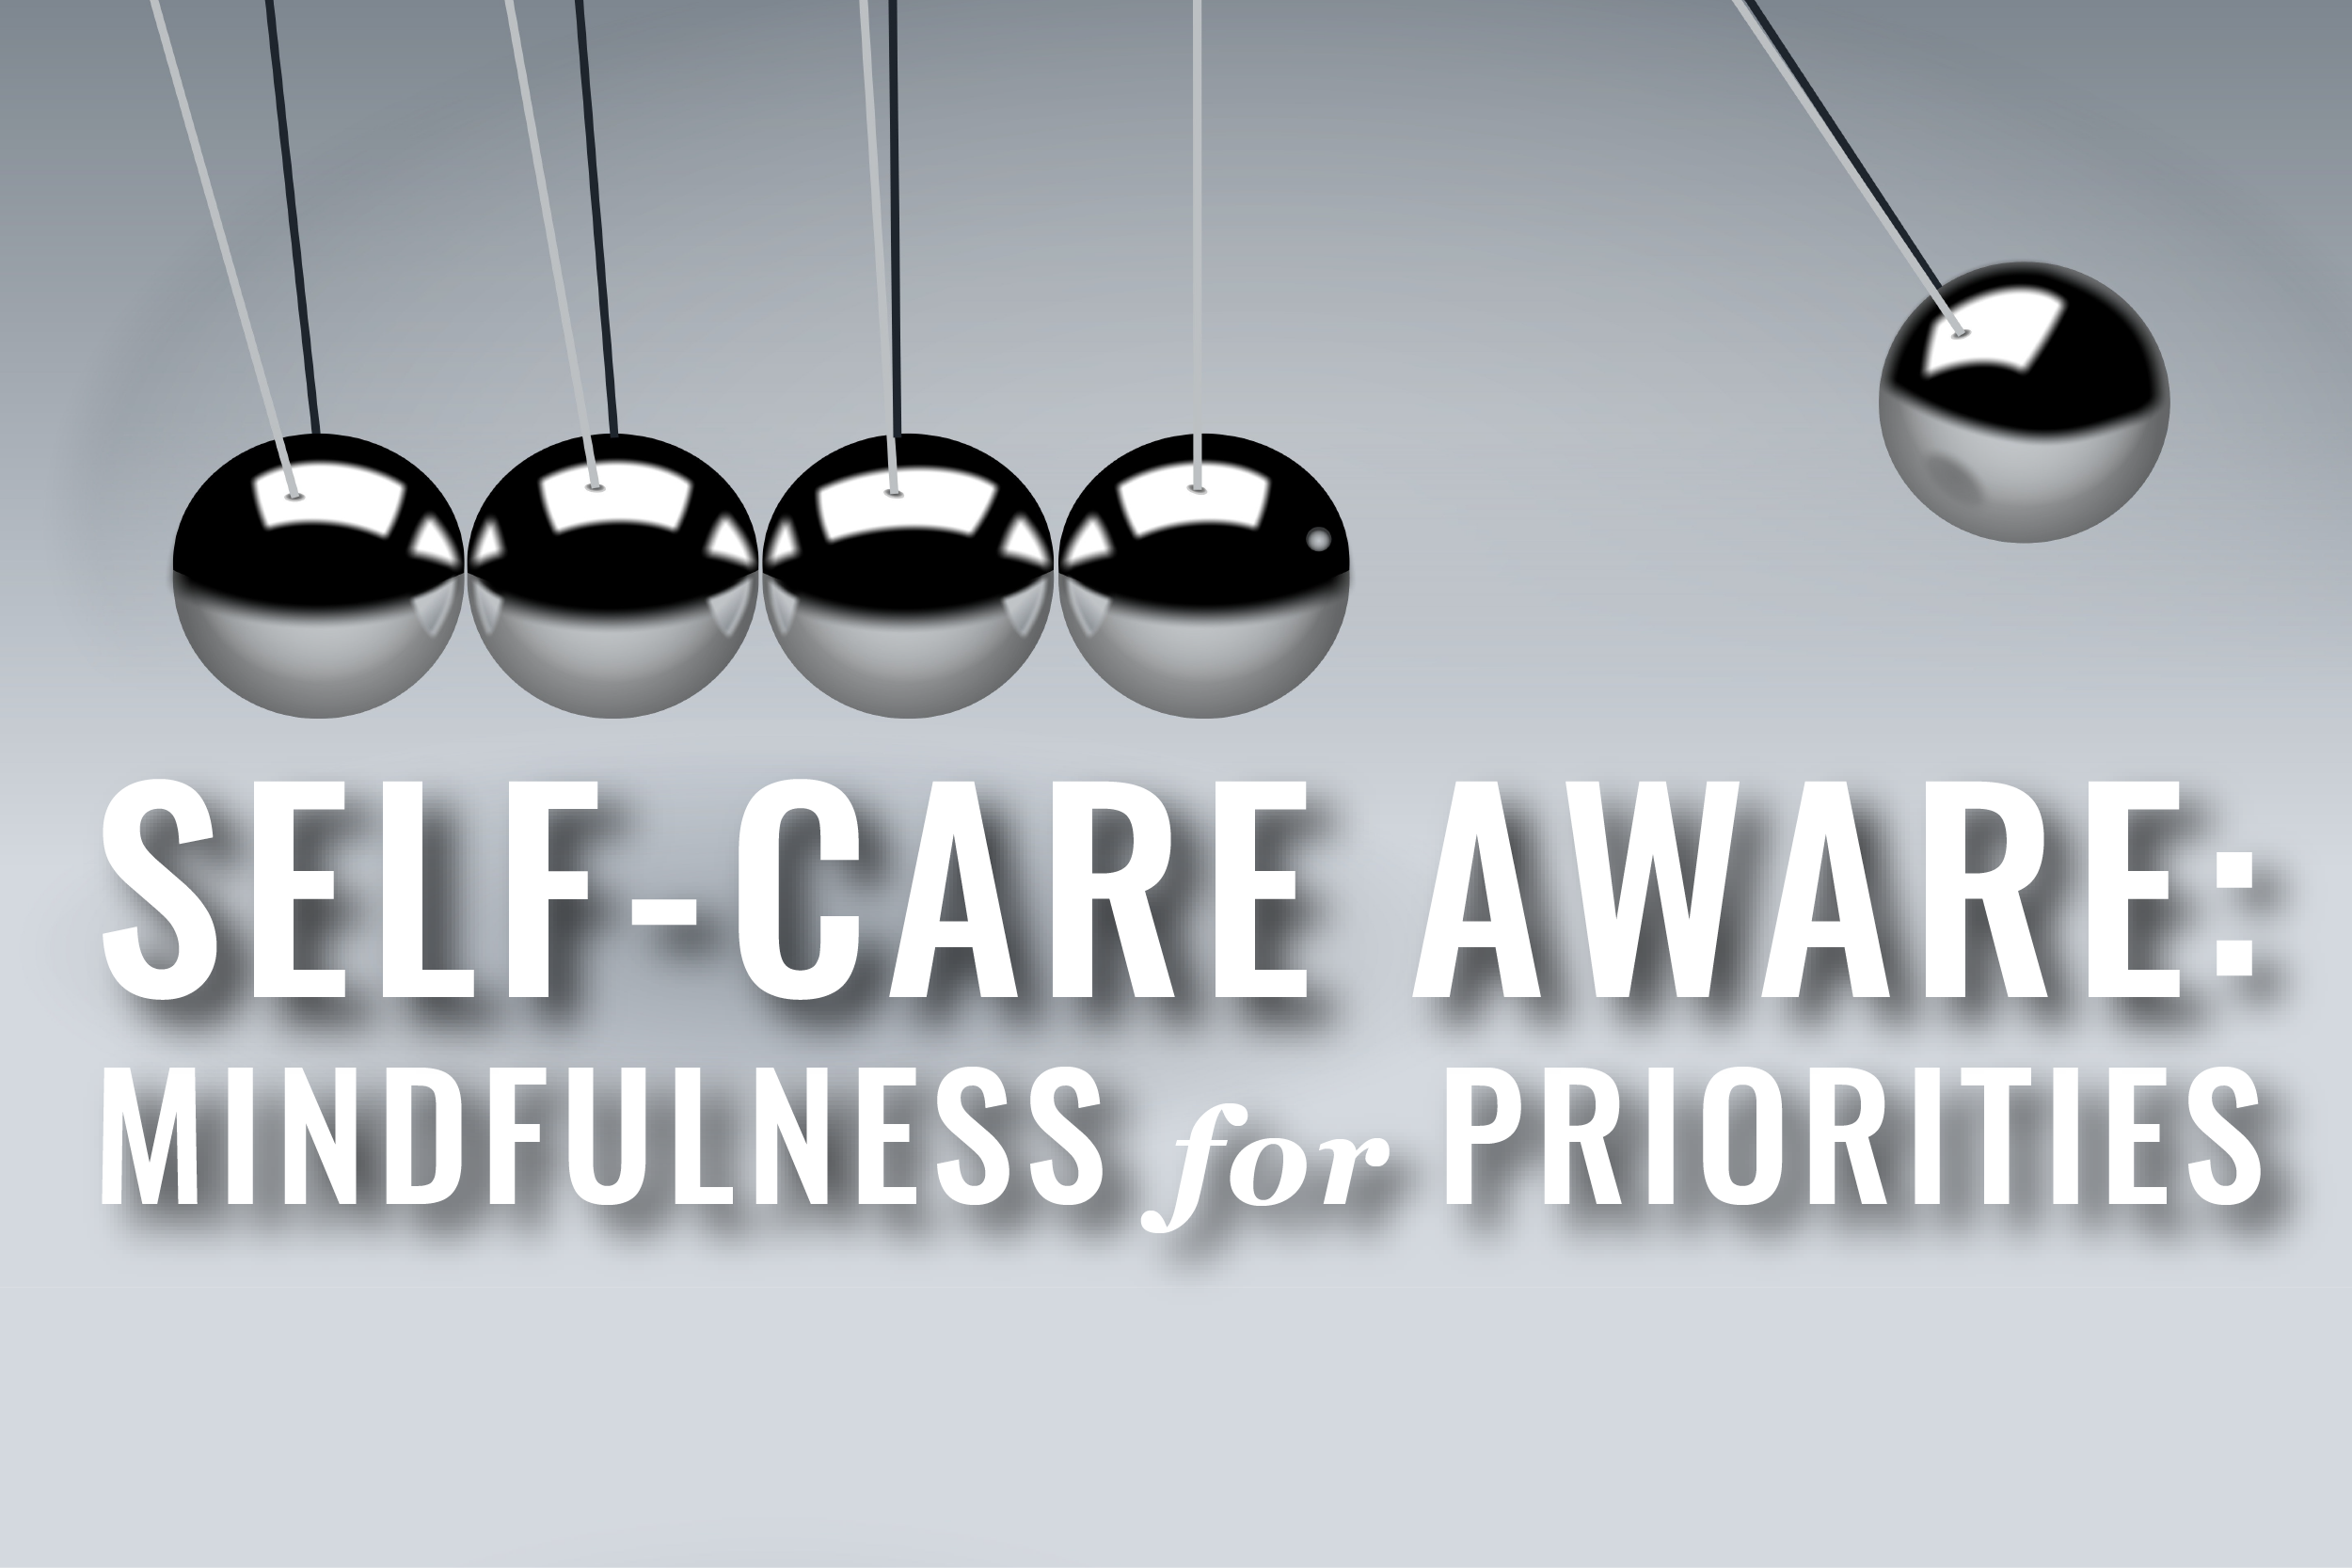 How Can Lawyers Prioritize Self-Care?